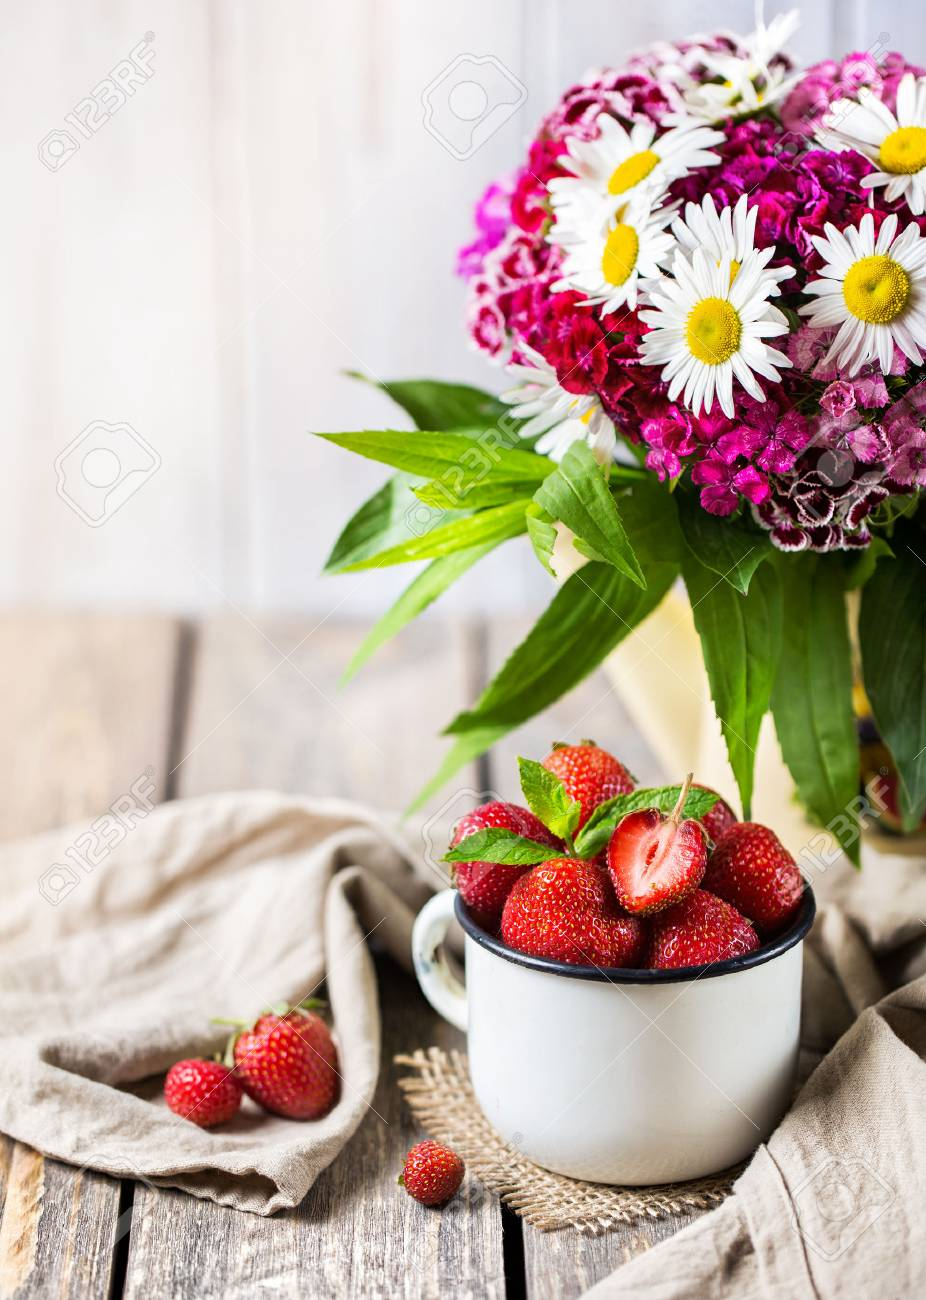 Strawberry In The Cup Near Flower Bouquet On Wooden Table Stock Photo Picture And Royalty Free Image Image 41075869